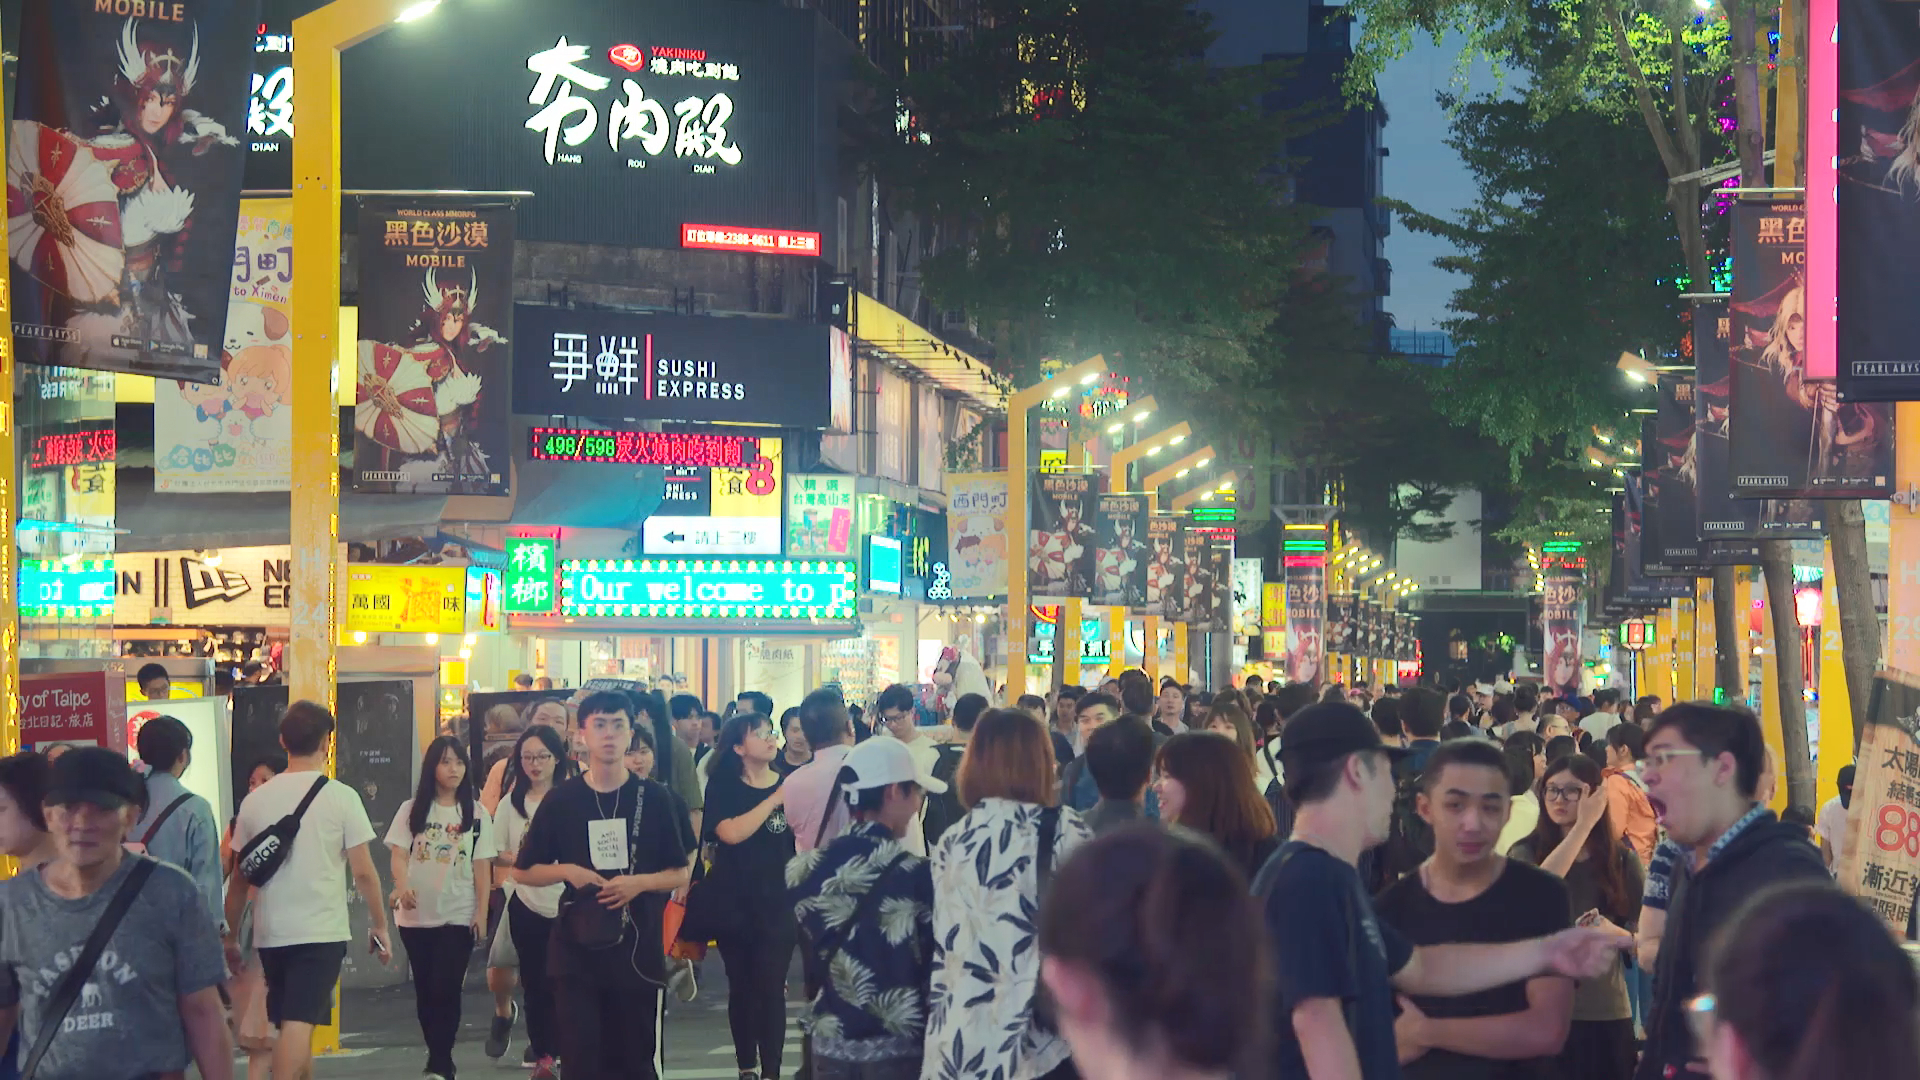 'It's like the Times Square of Taiwan'